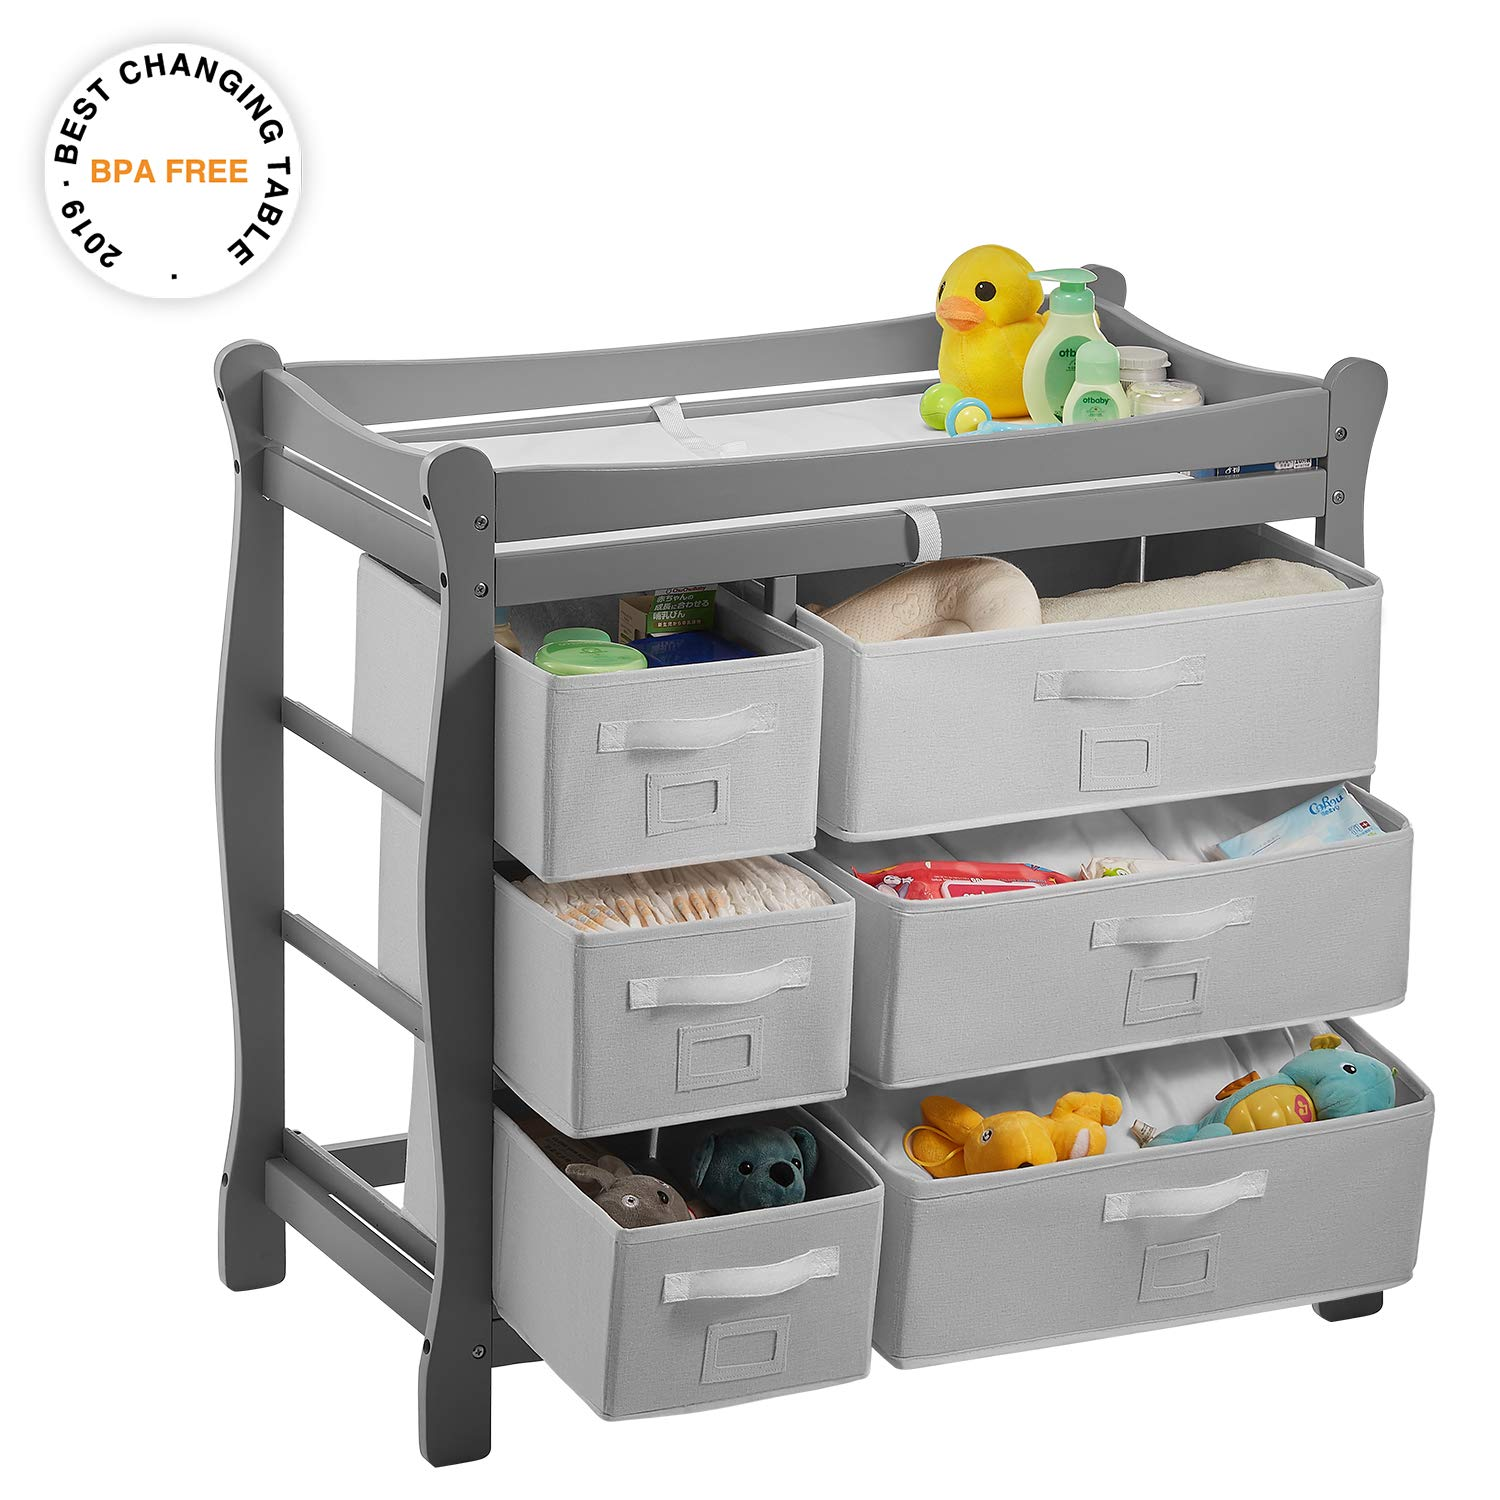 Kealive Baby Changing Table, Diaper Changing Table with 6 Baskets, Nursery Station with Pad and Safety Strap for Infant, Easy to Assemble, BPA Free